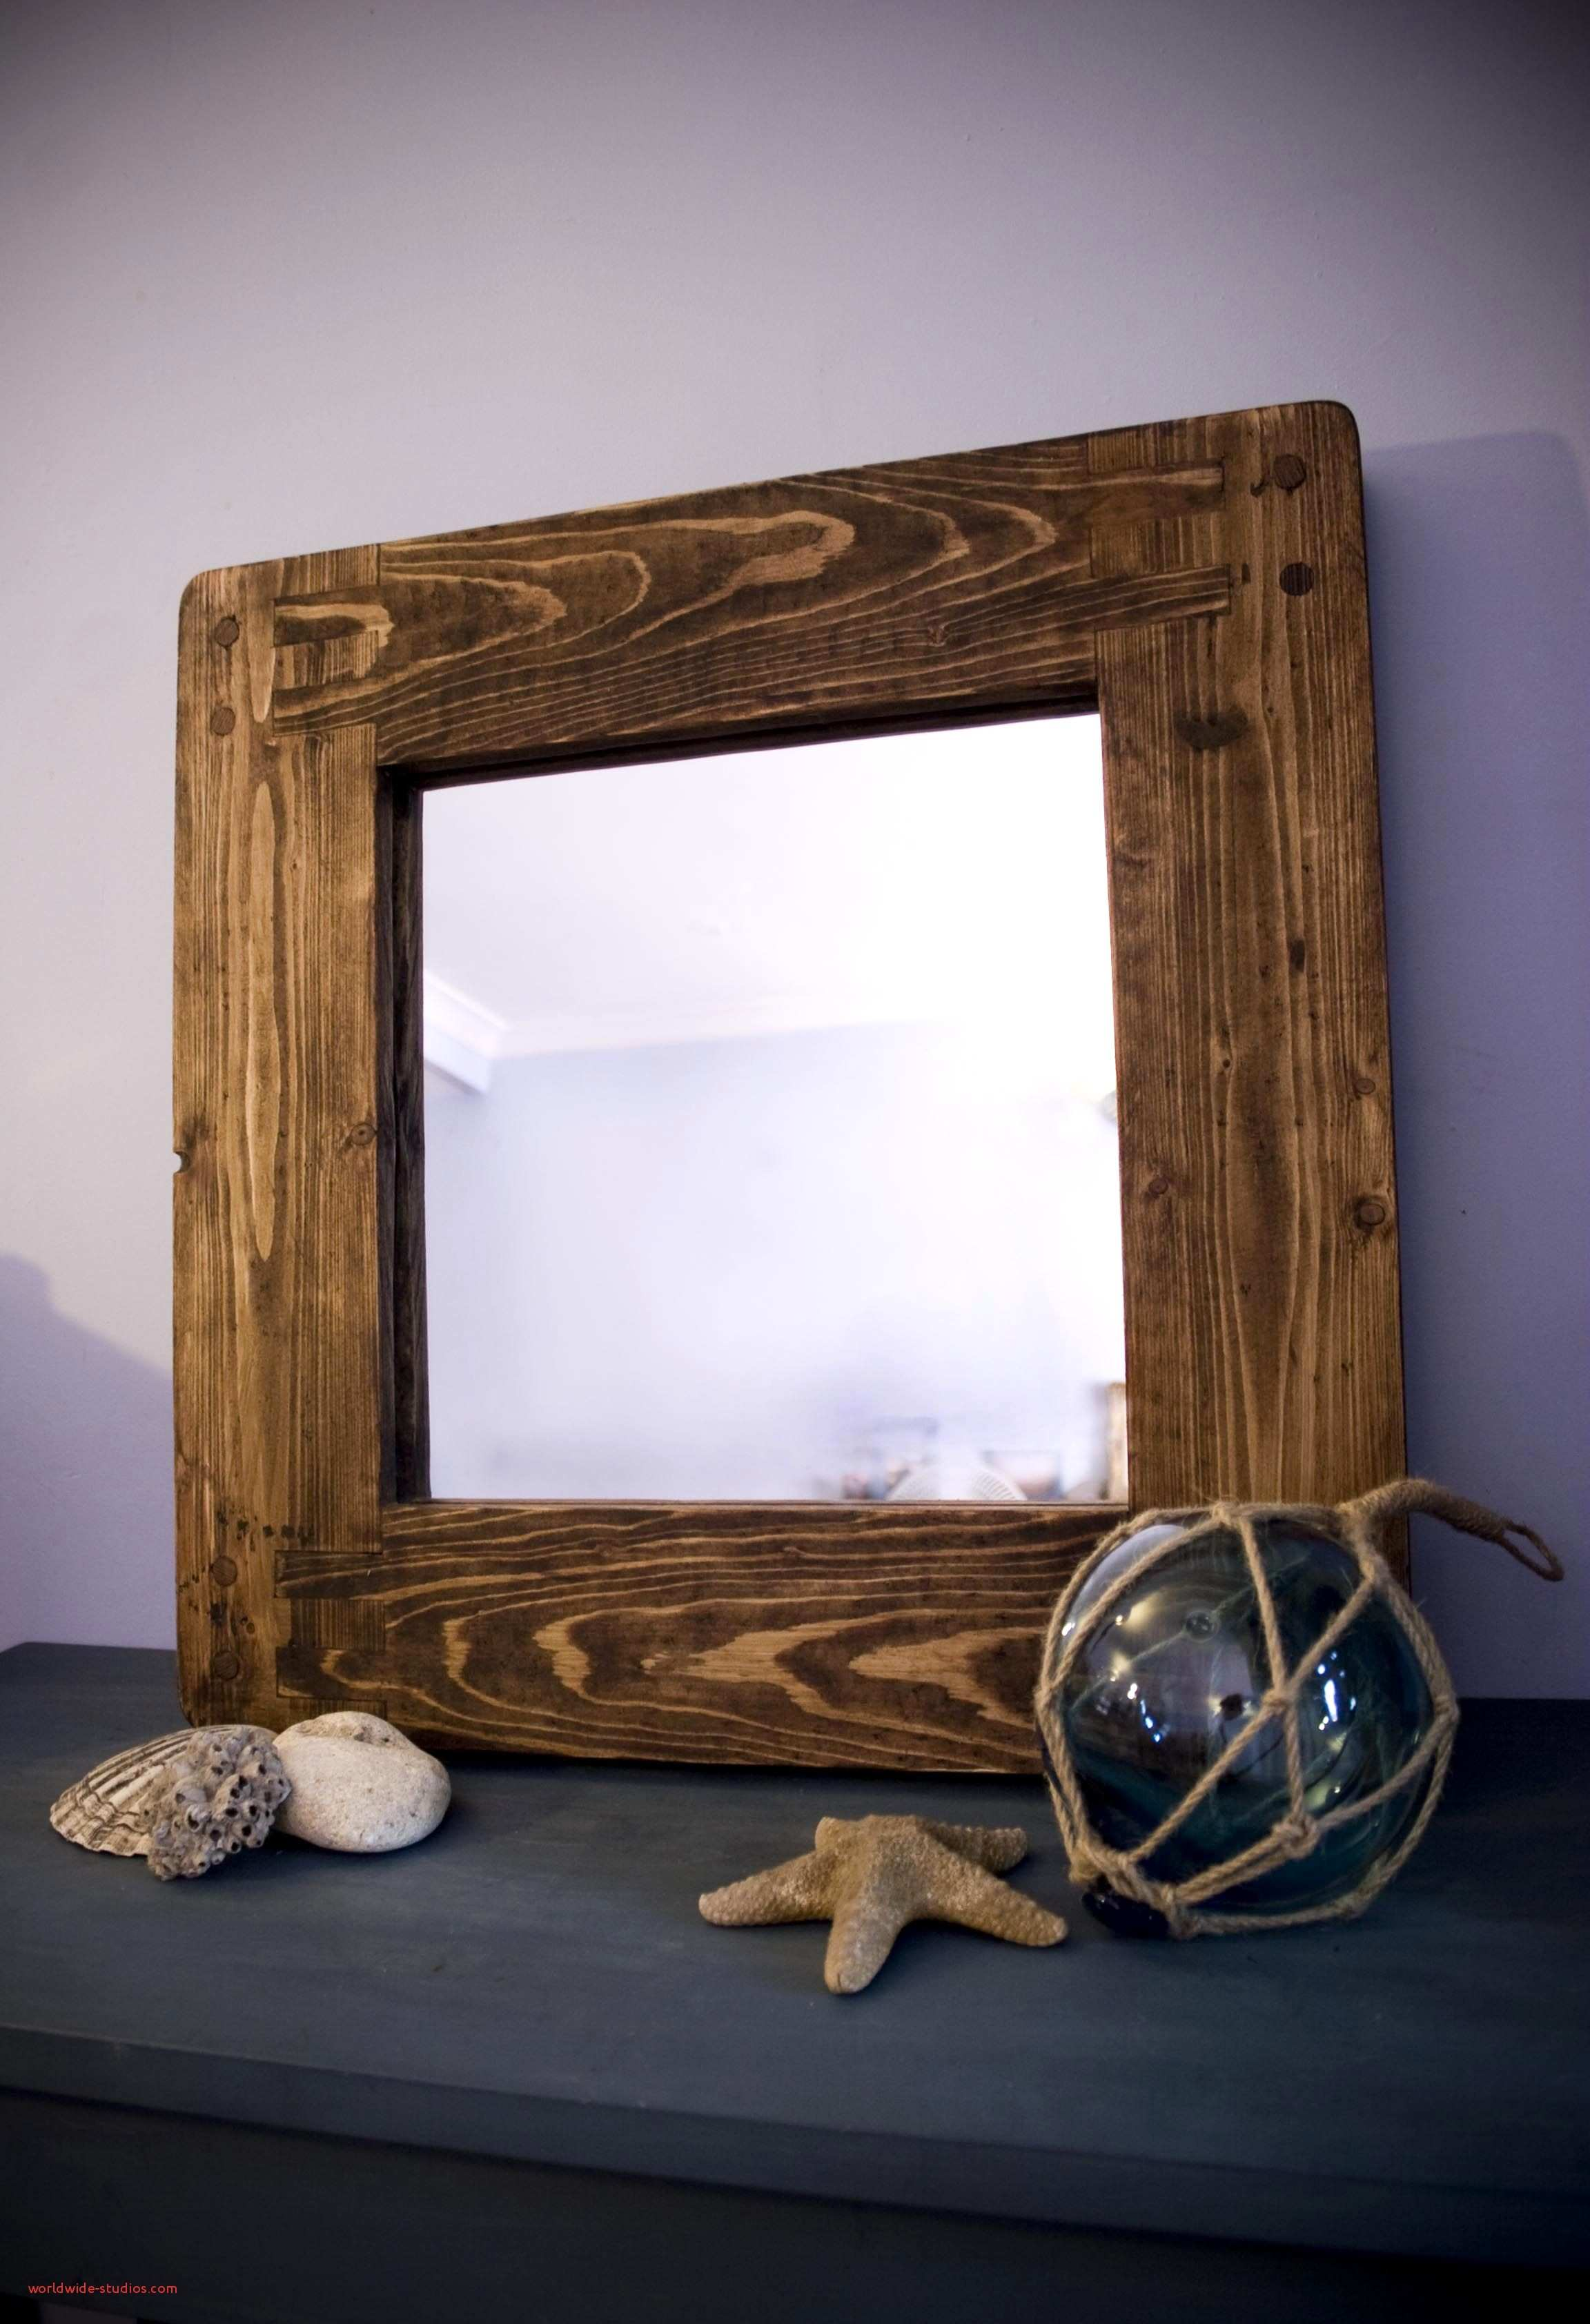 Top Result Diy Wood Frame for Mirror New I Like Rustic Wood Like